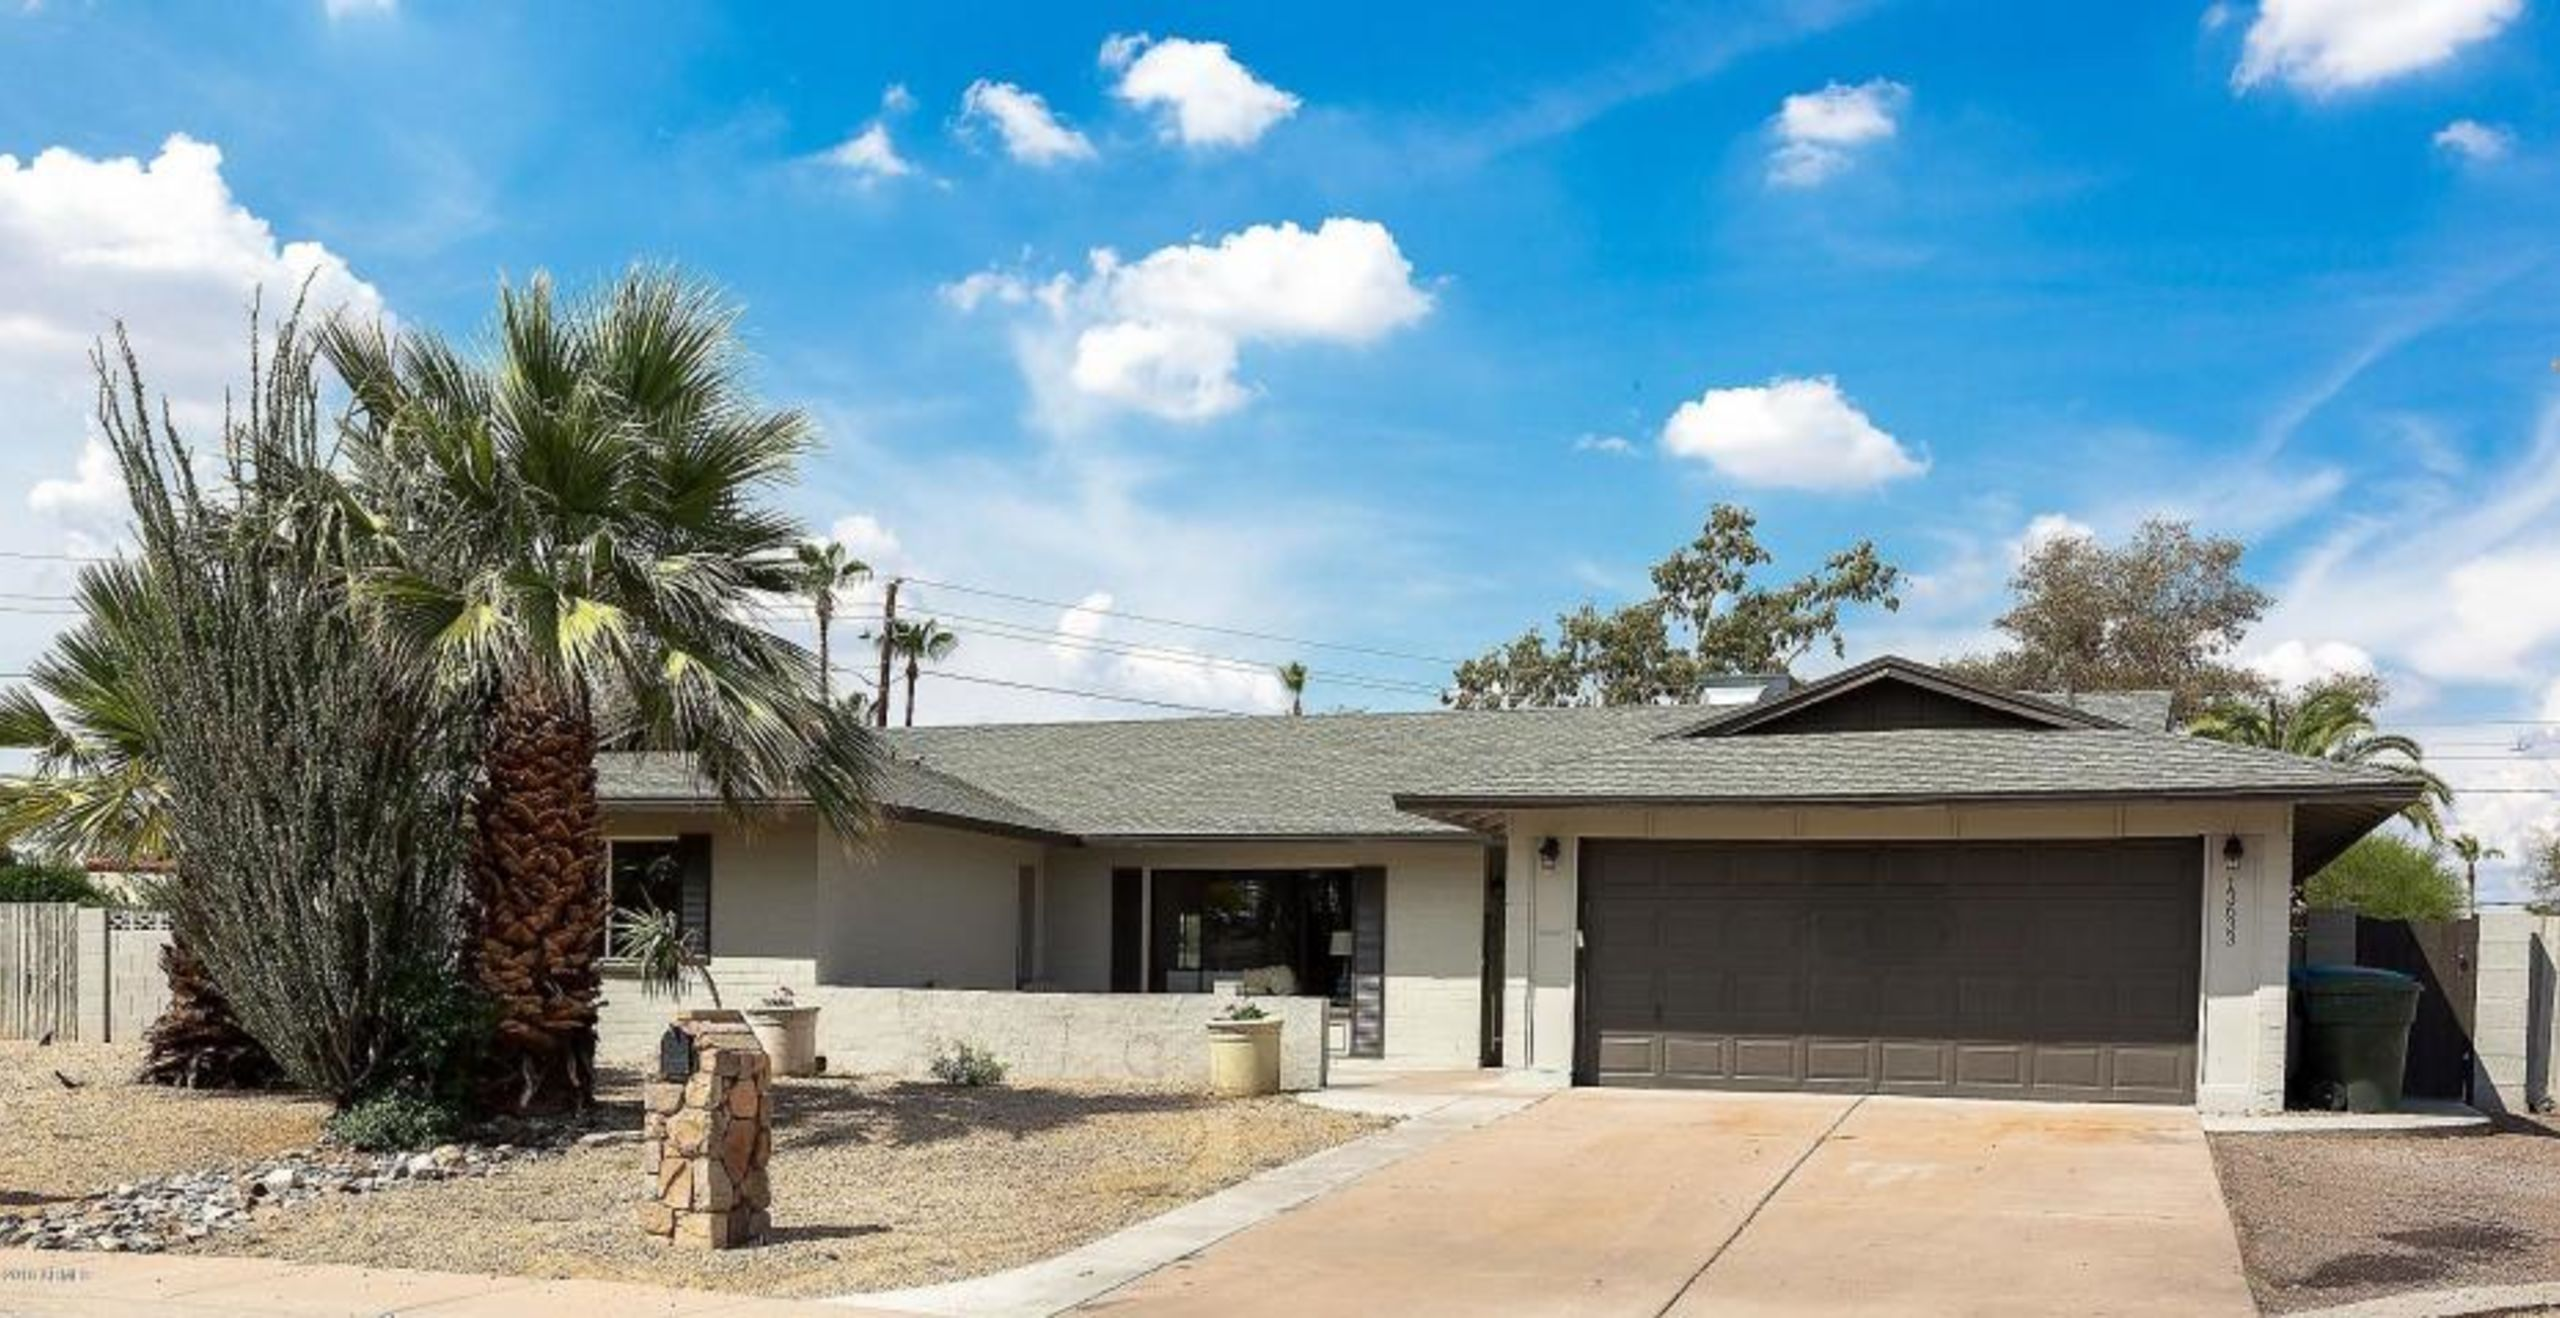 Sold!  13633 N 51st Place - Scottsdale 85254